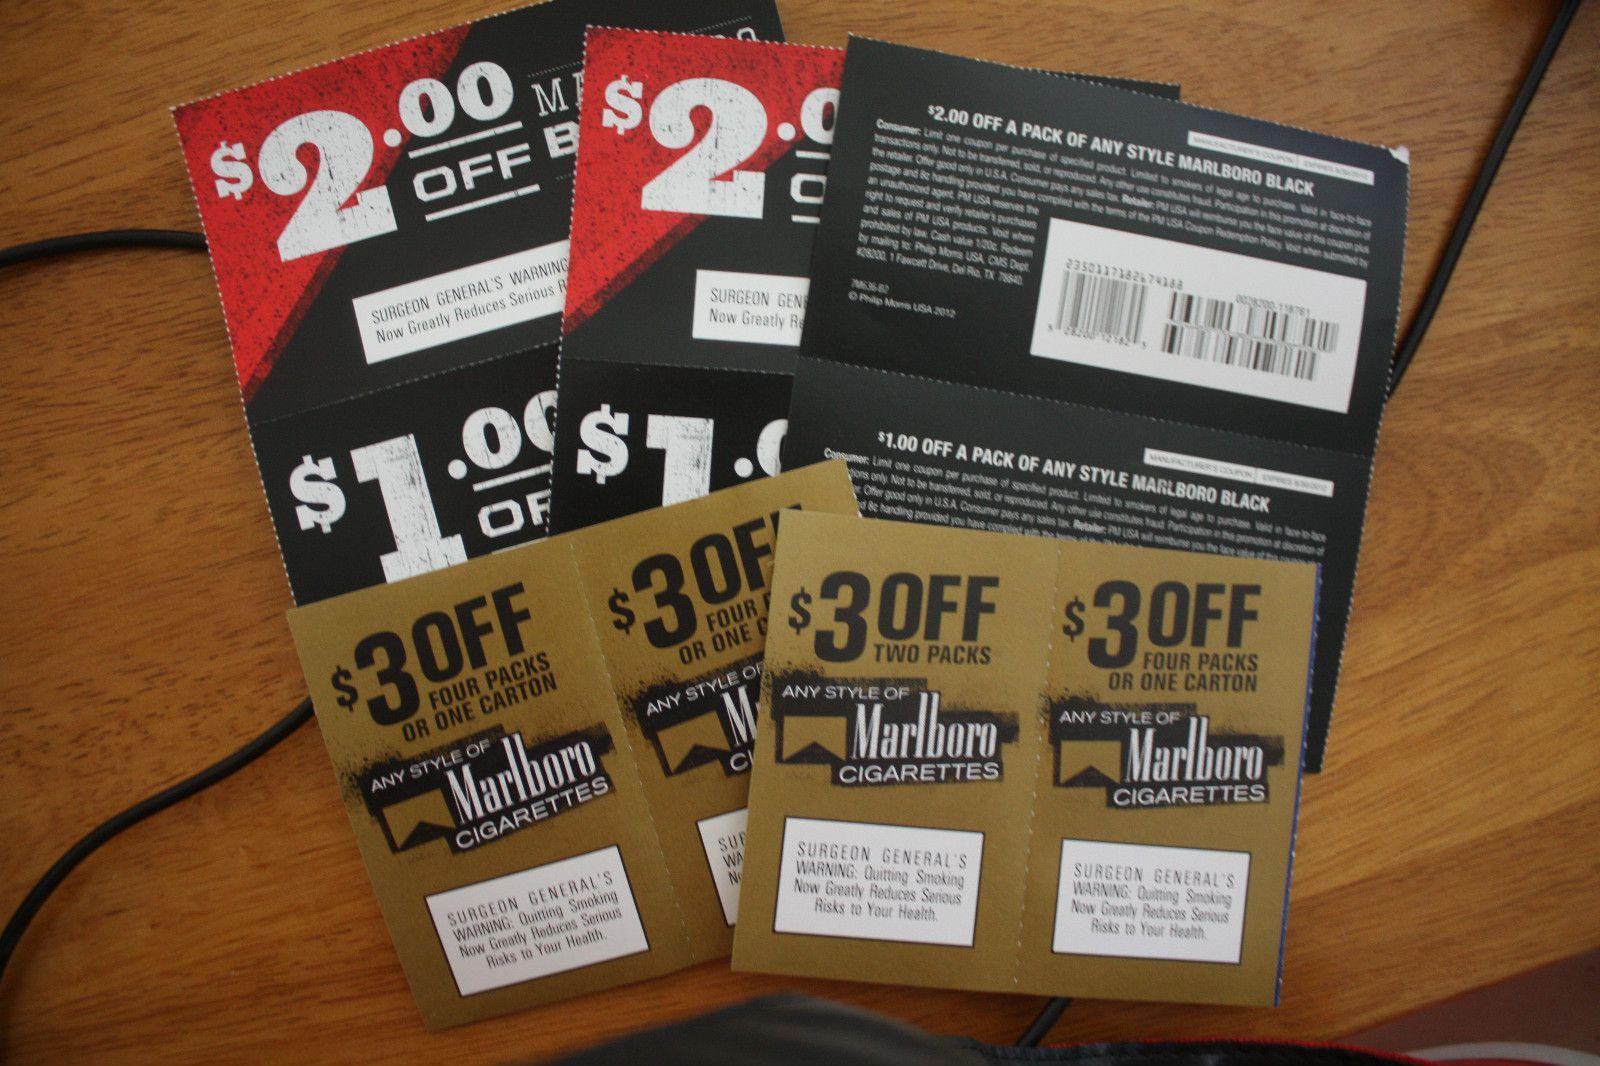 Pin On Cigarette Coupons - Free Printable Newport Cigarette Coupons